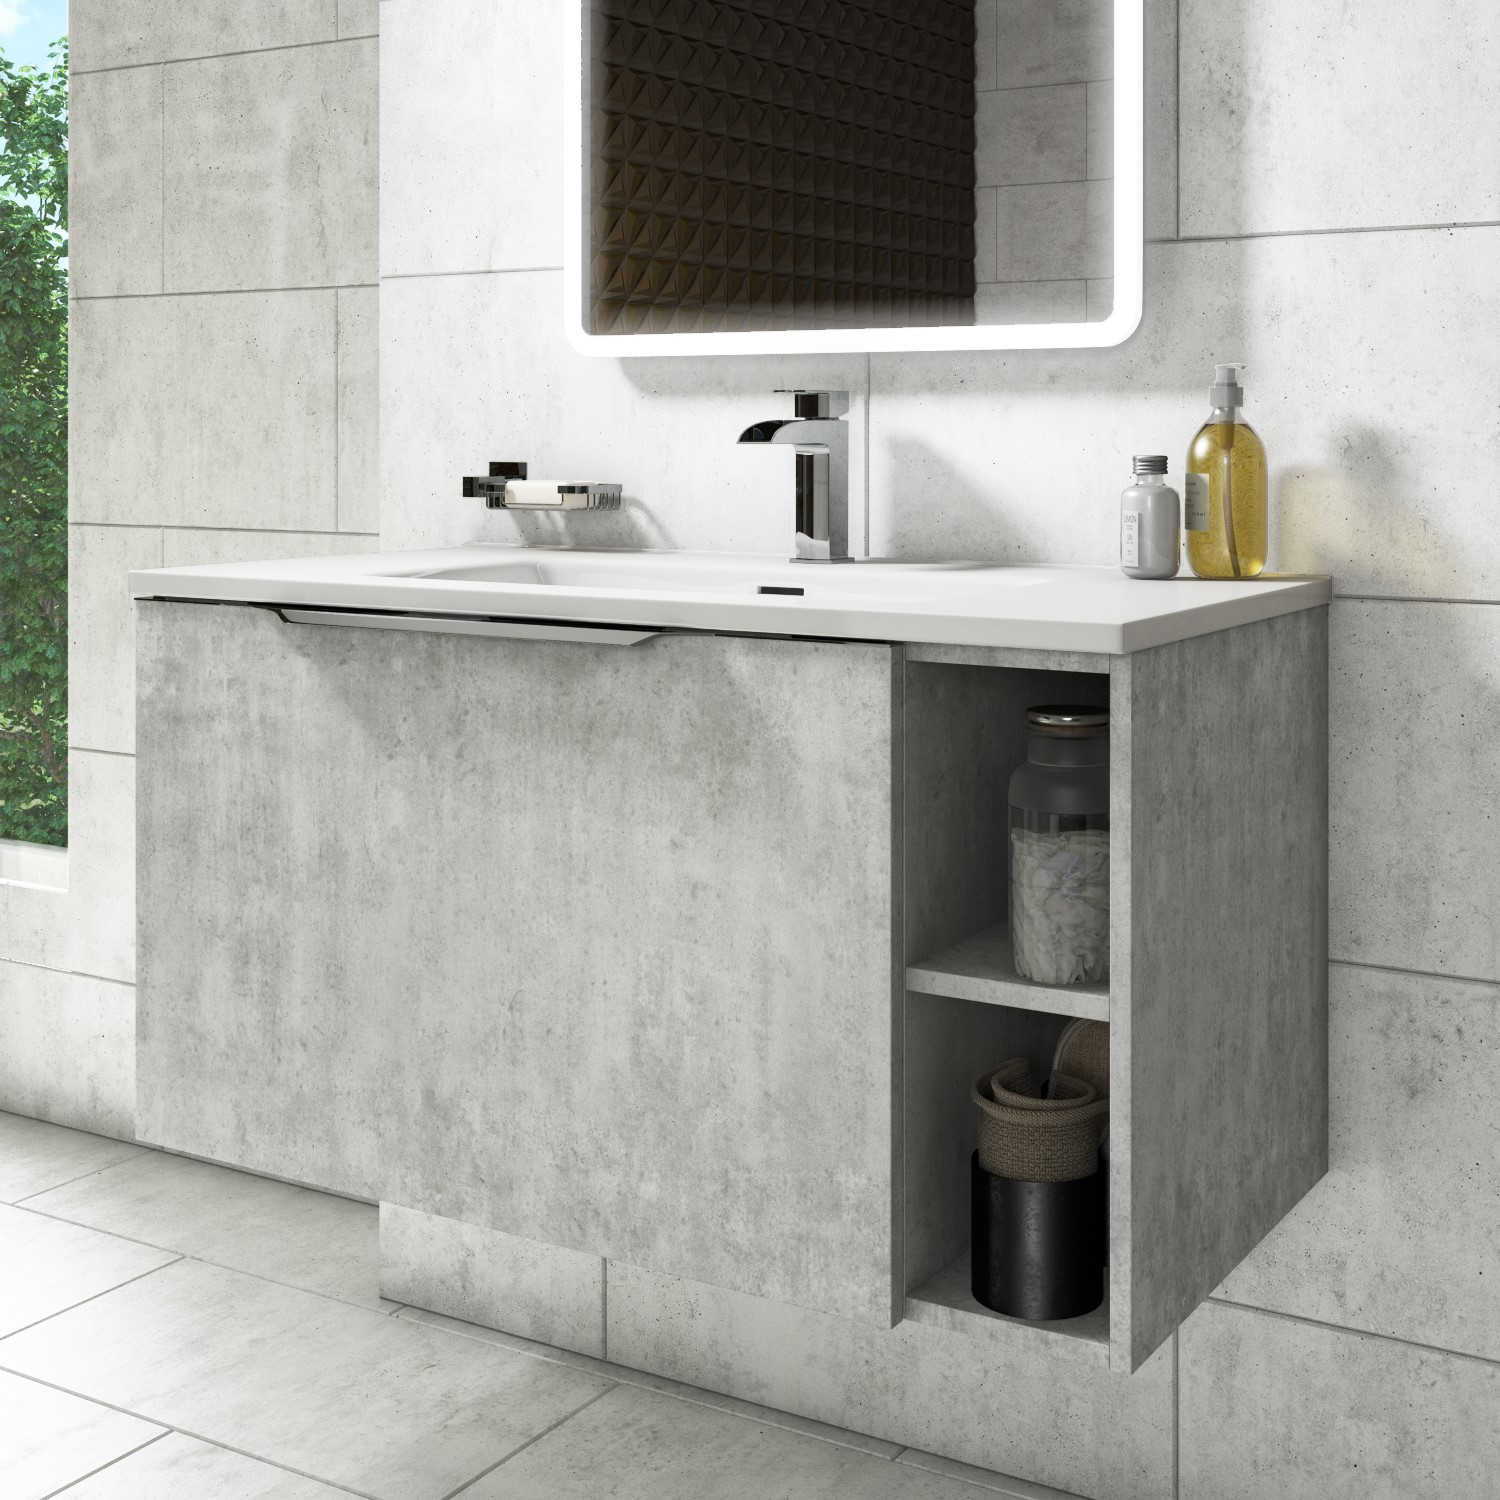 900mm Wall Hung Vanity Unit With Basin Concrete Effect Sion Better Bathrooms